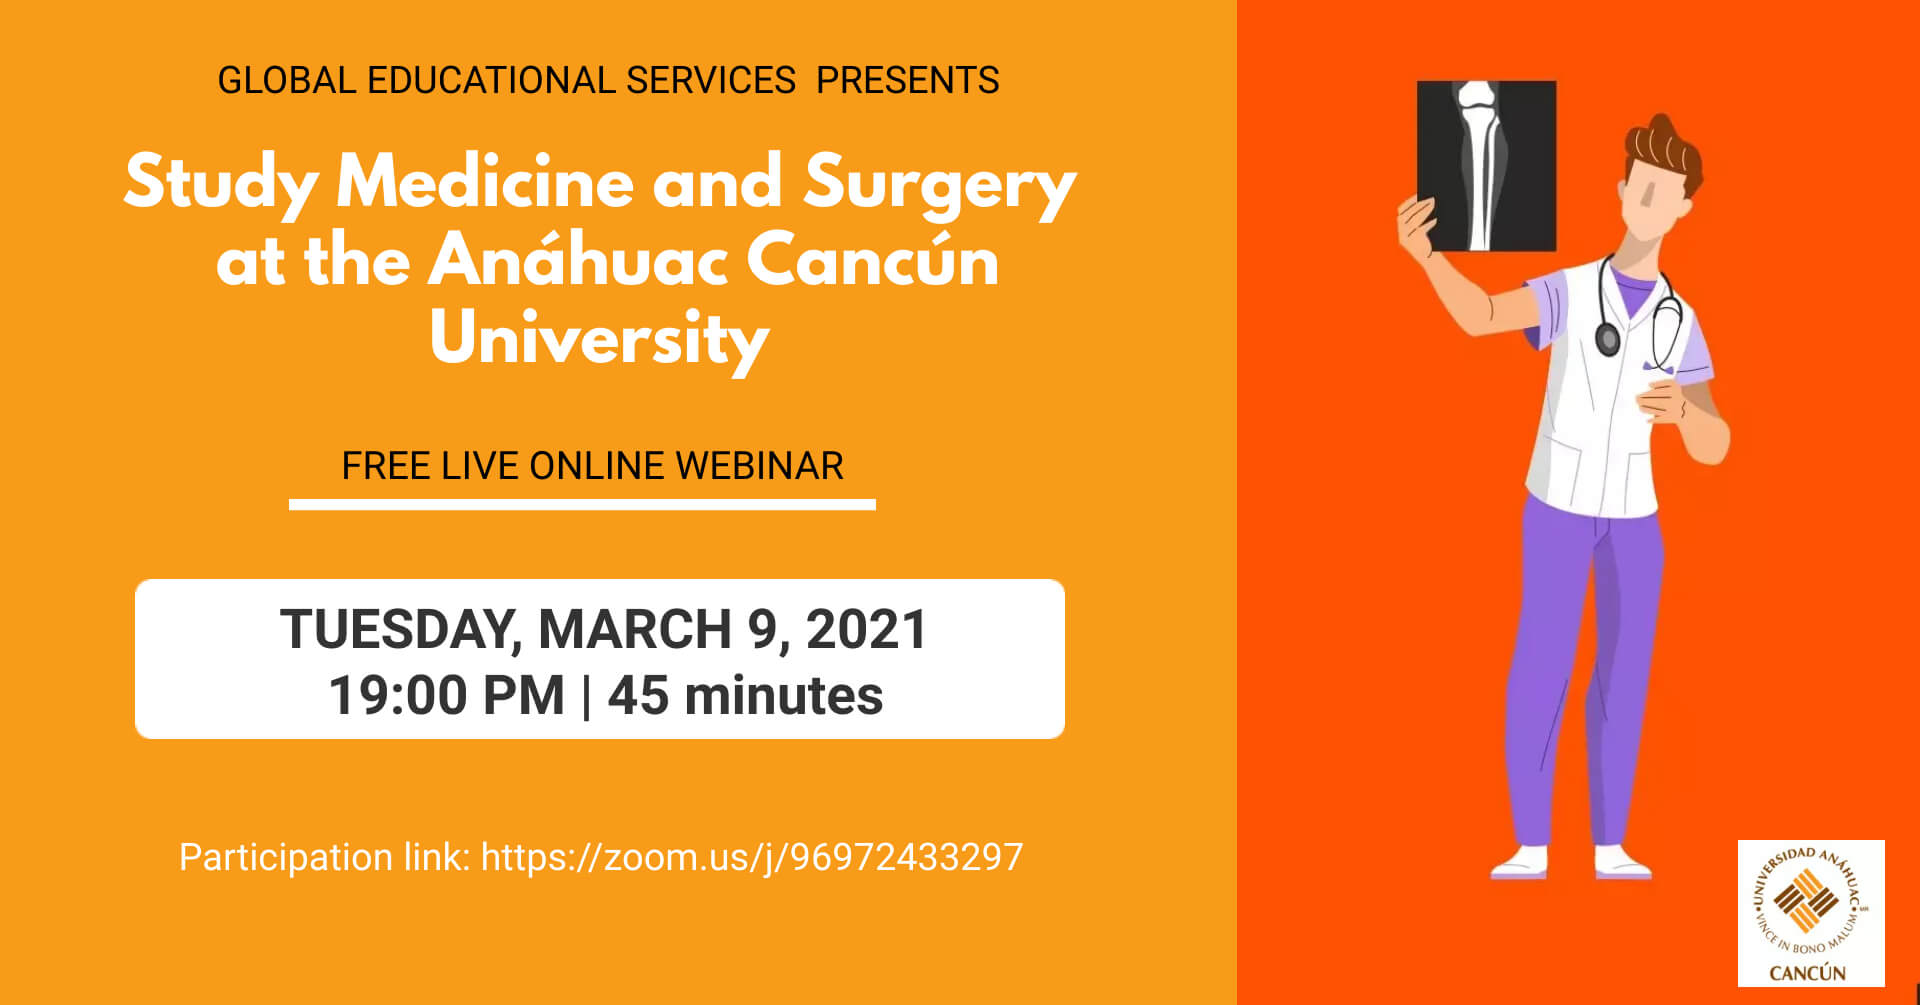 Facebook Event Webinar Invitation - Study Medicine and Surgery at Anahuac Cancur University